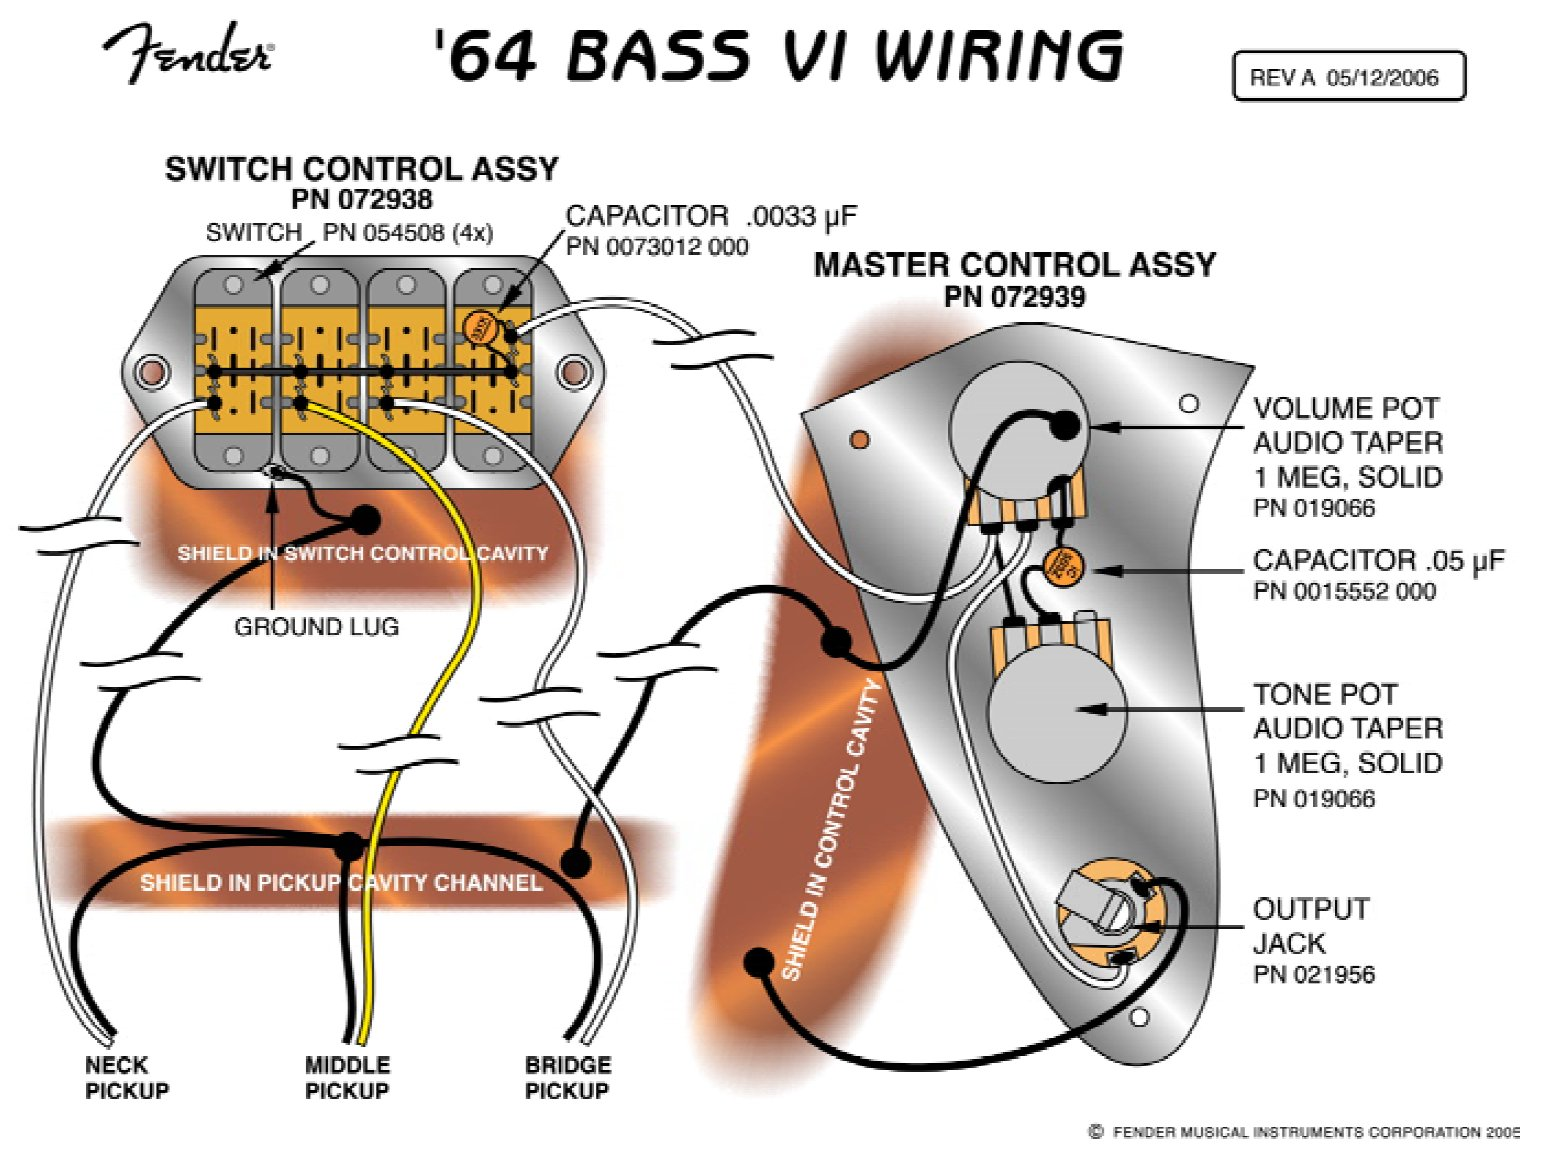 Wiring diagram squier vintage modified jazz bass wiring diagram perfect jazz bass wiring schematic image best images for wiring rh oursweetbakeshop info asfbconference2016 Choice Image